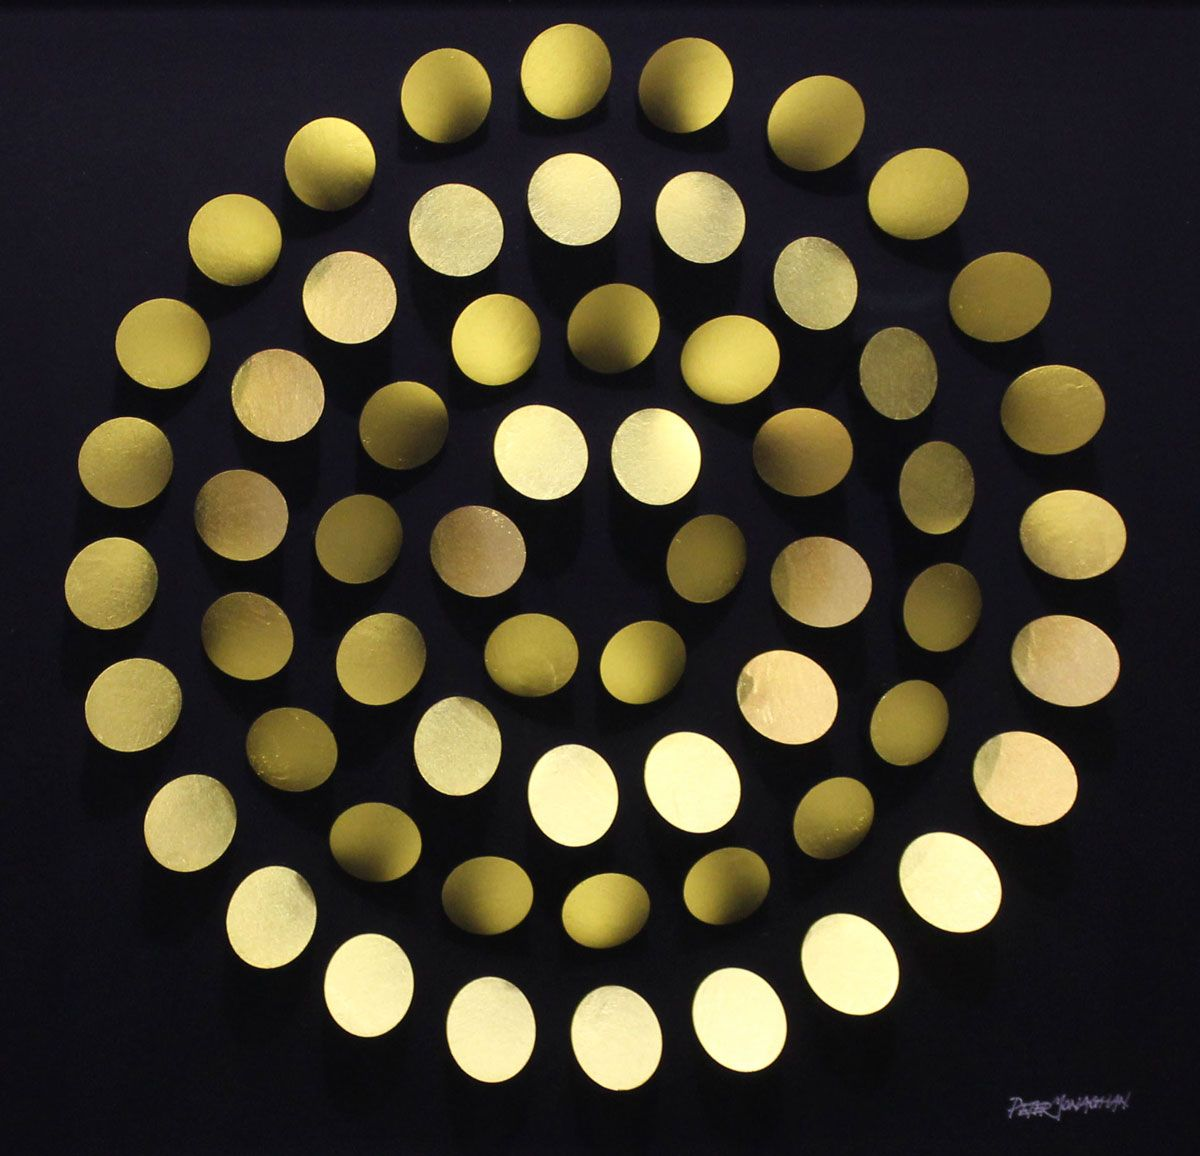 Peter Monaghan: Golden Rotation I, 2017, 43 x 43cms, mixed media | Gormleys Dublin Christmas Exhibition | Saturday 25 November 2017  – Saturday 6 January 2018 | Gormley's Fine Art, Dublin